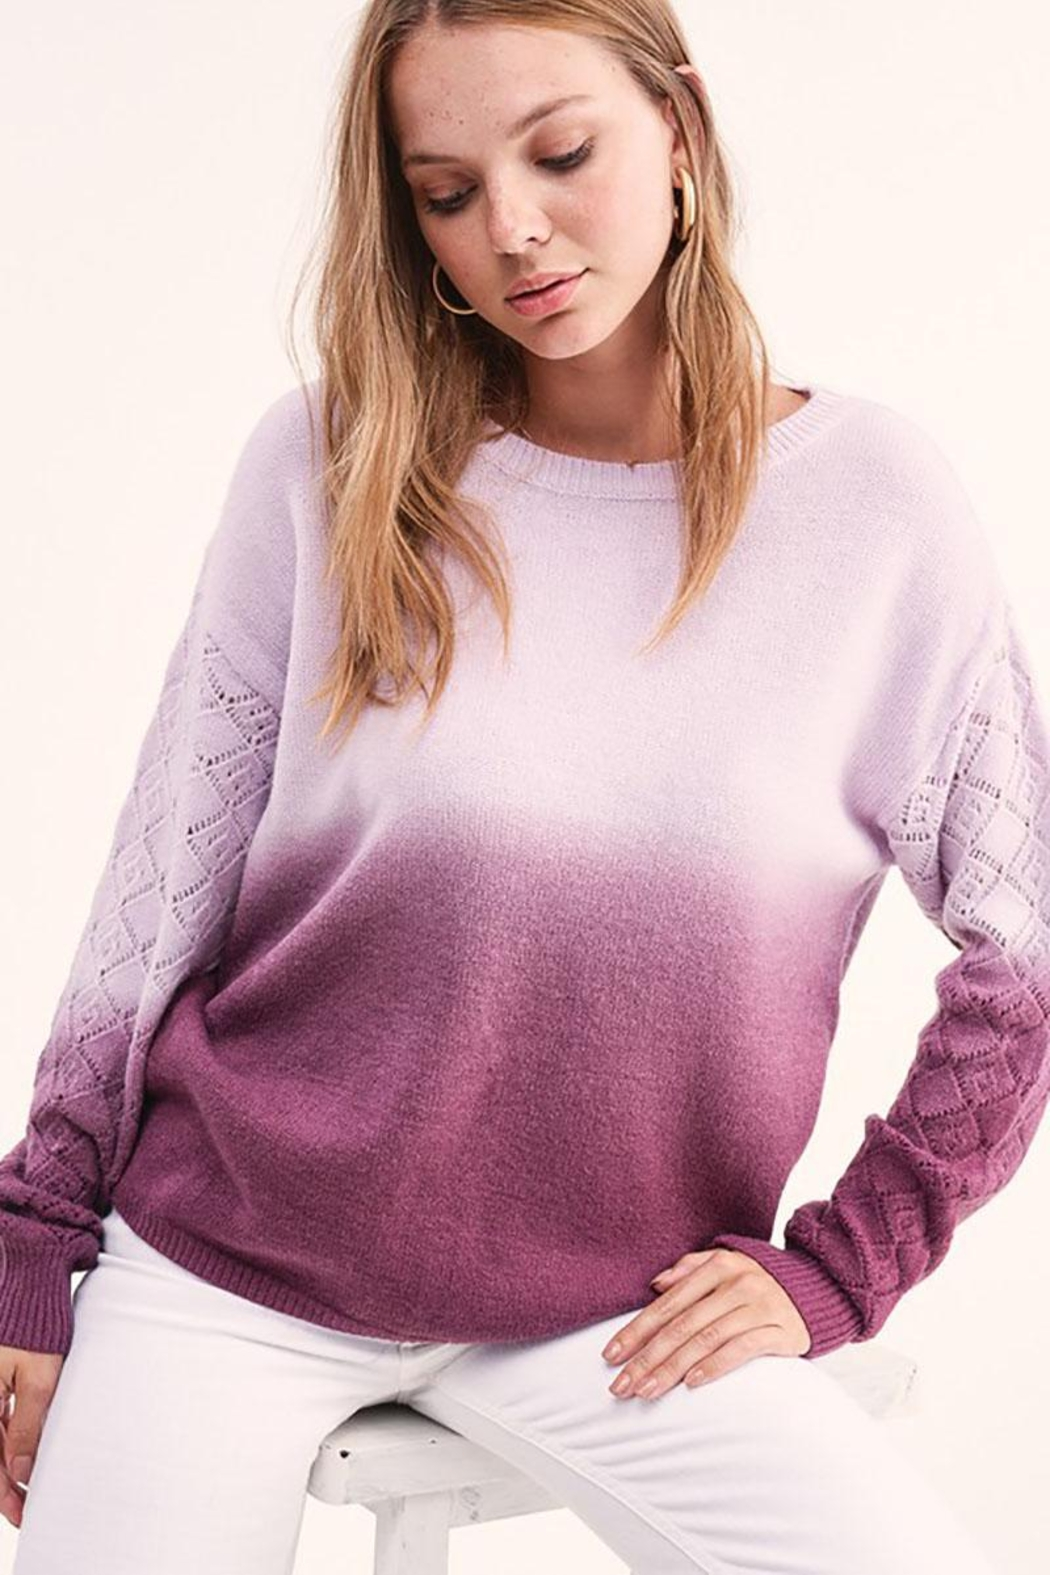 LA MIEL  Dip Dye Gradient Knit Pullover Sweater - Side Cropped Image